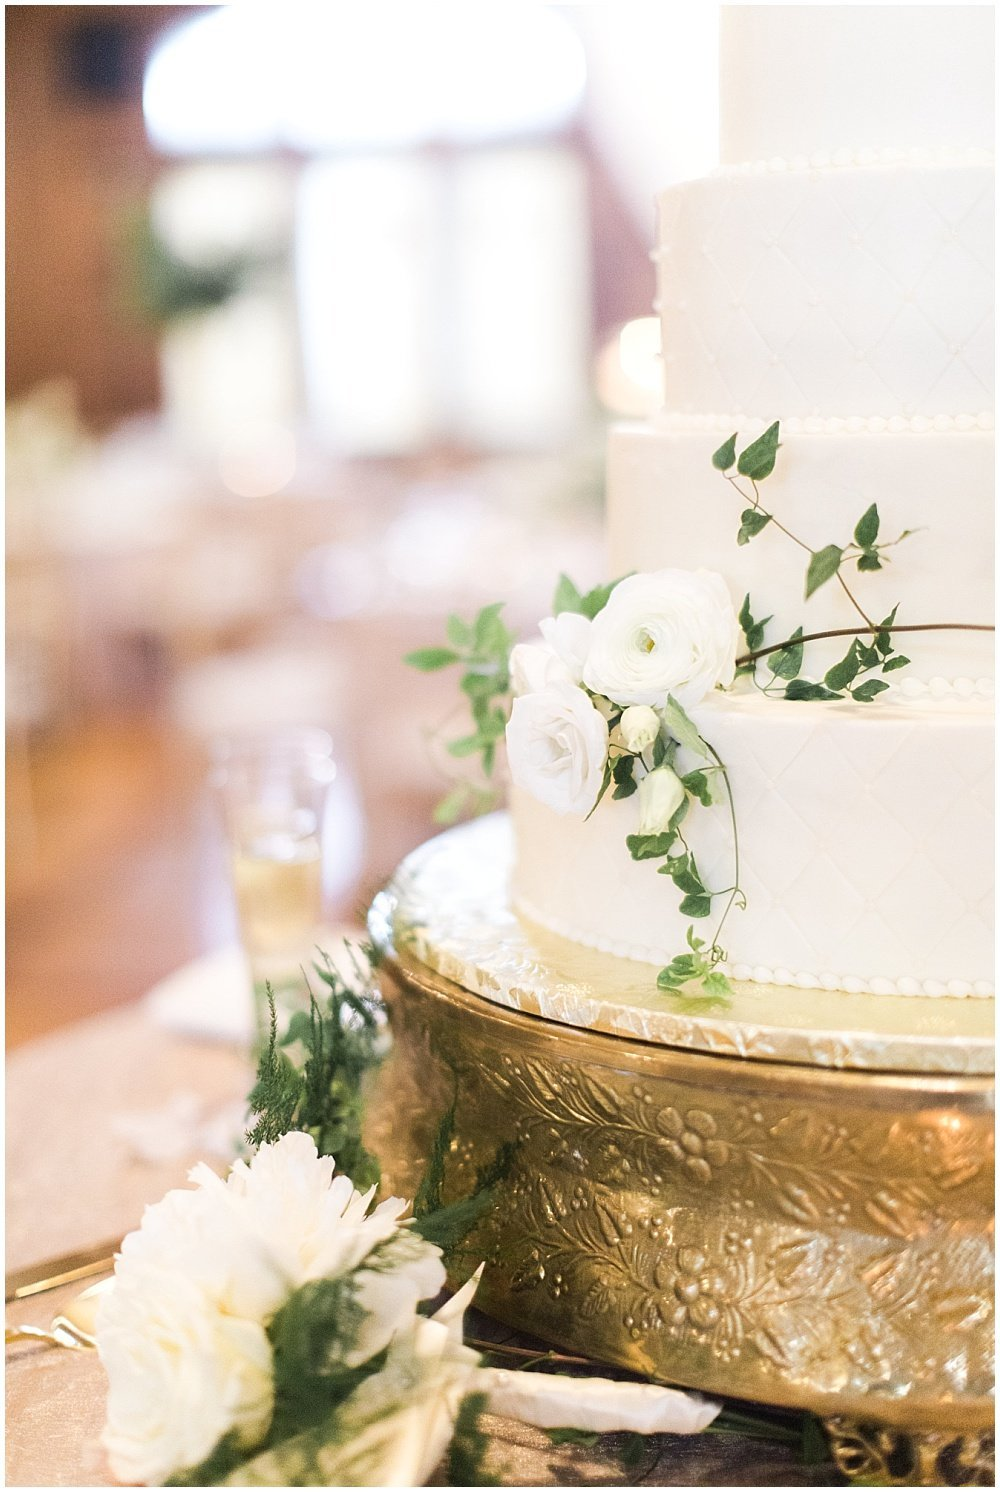 Spring-Scottish-Rite-Cathedral-Neutral-Gold-Ivory-Greenery-Floral-Indianapolis-Wedding-Ivan-Louise-Images-Jessica-Dum-Wedding-Coordination_photo_0019